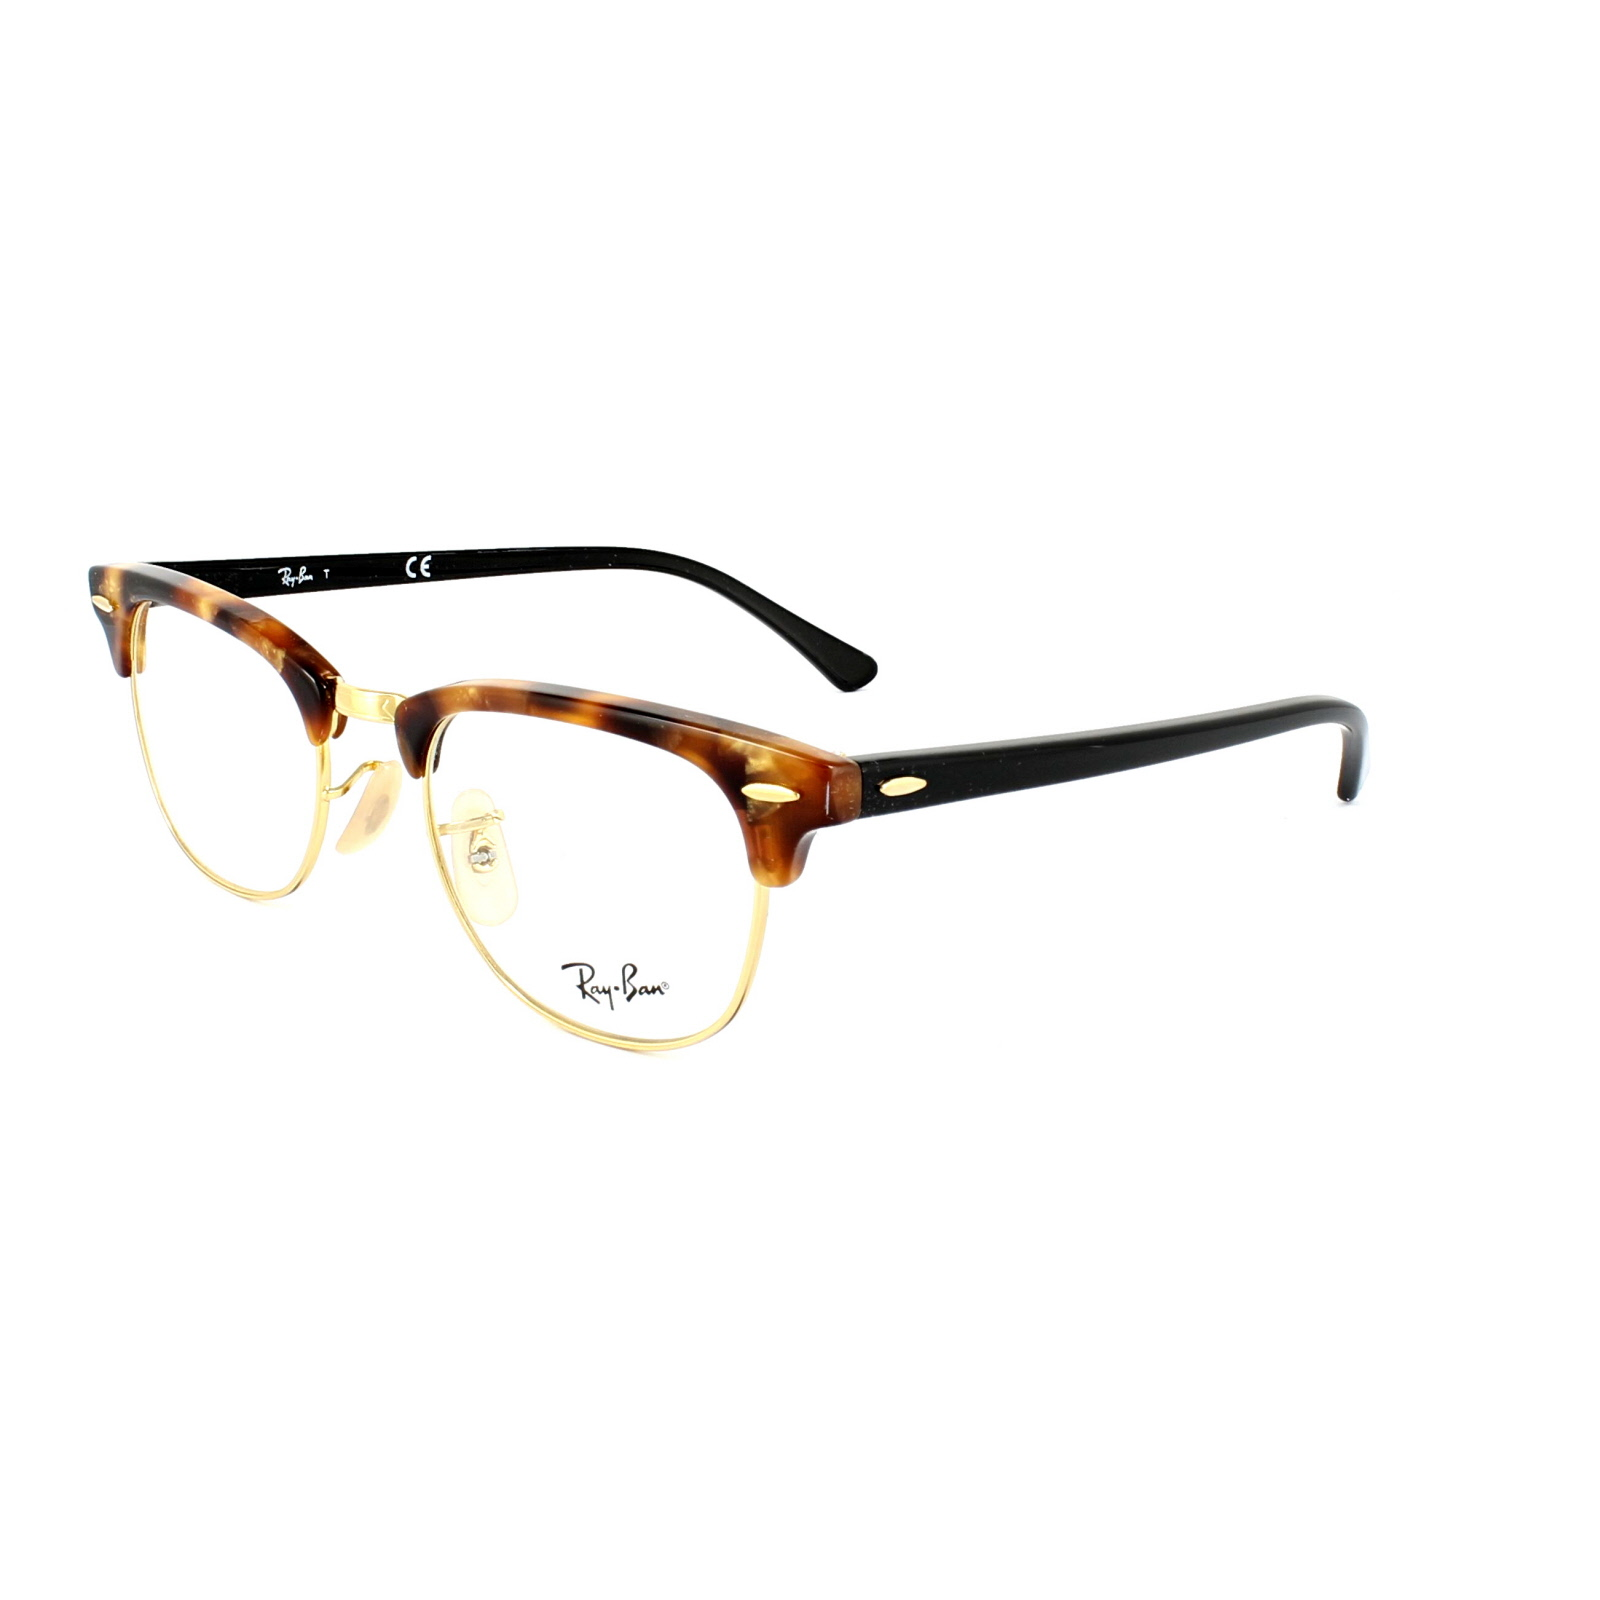 46abe2ba7 Sentinel Ray-Ban Glasses Frames 5154 Clubmaster 5494 Fleck Brown Havana 49mm